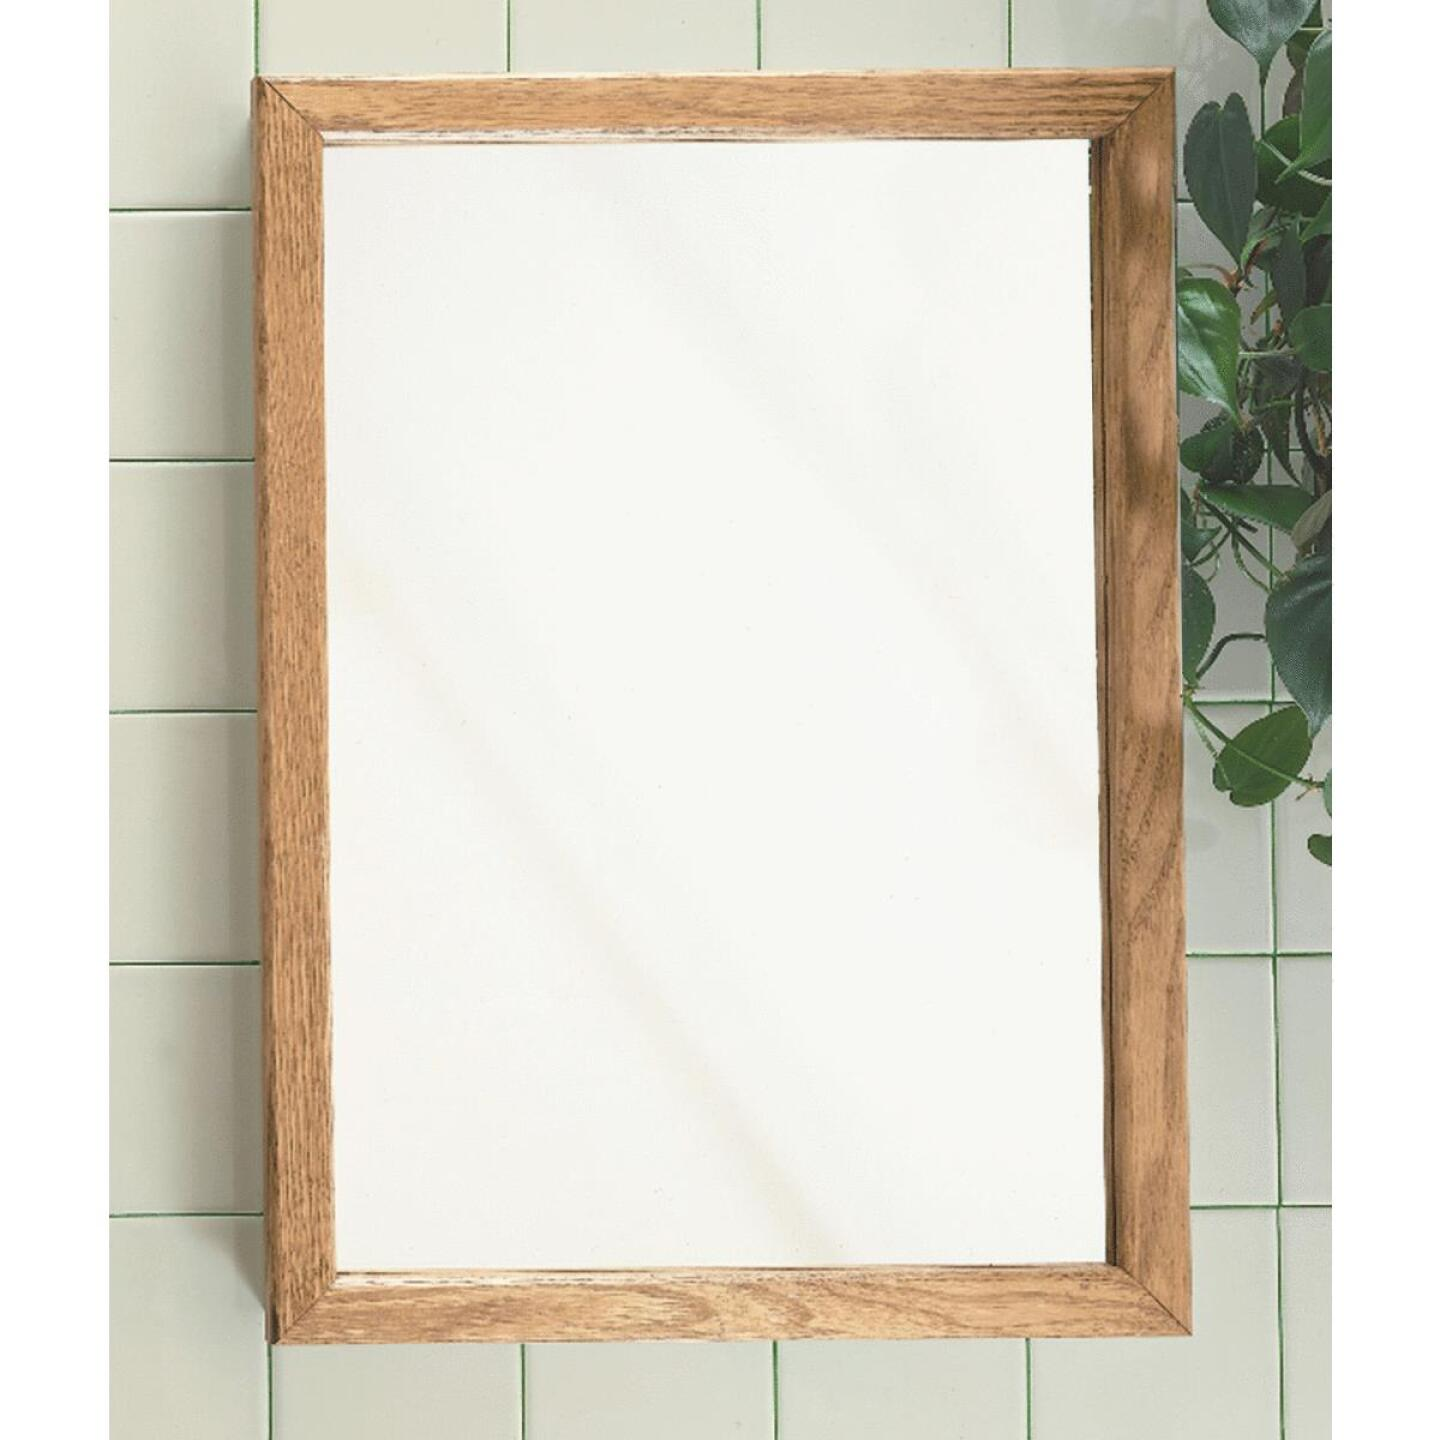 Zenith Oak 16 In. W x 22 In. H x 4-1/2 In. D Single Mirror Surface/Recess Mount Framed Medicine Cabinet Image 2